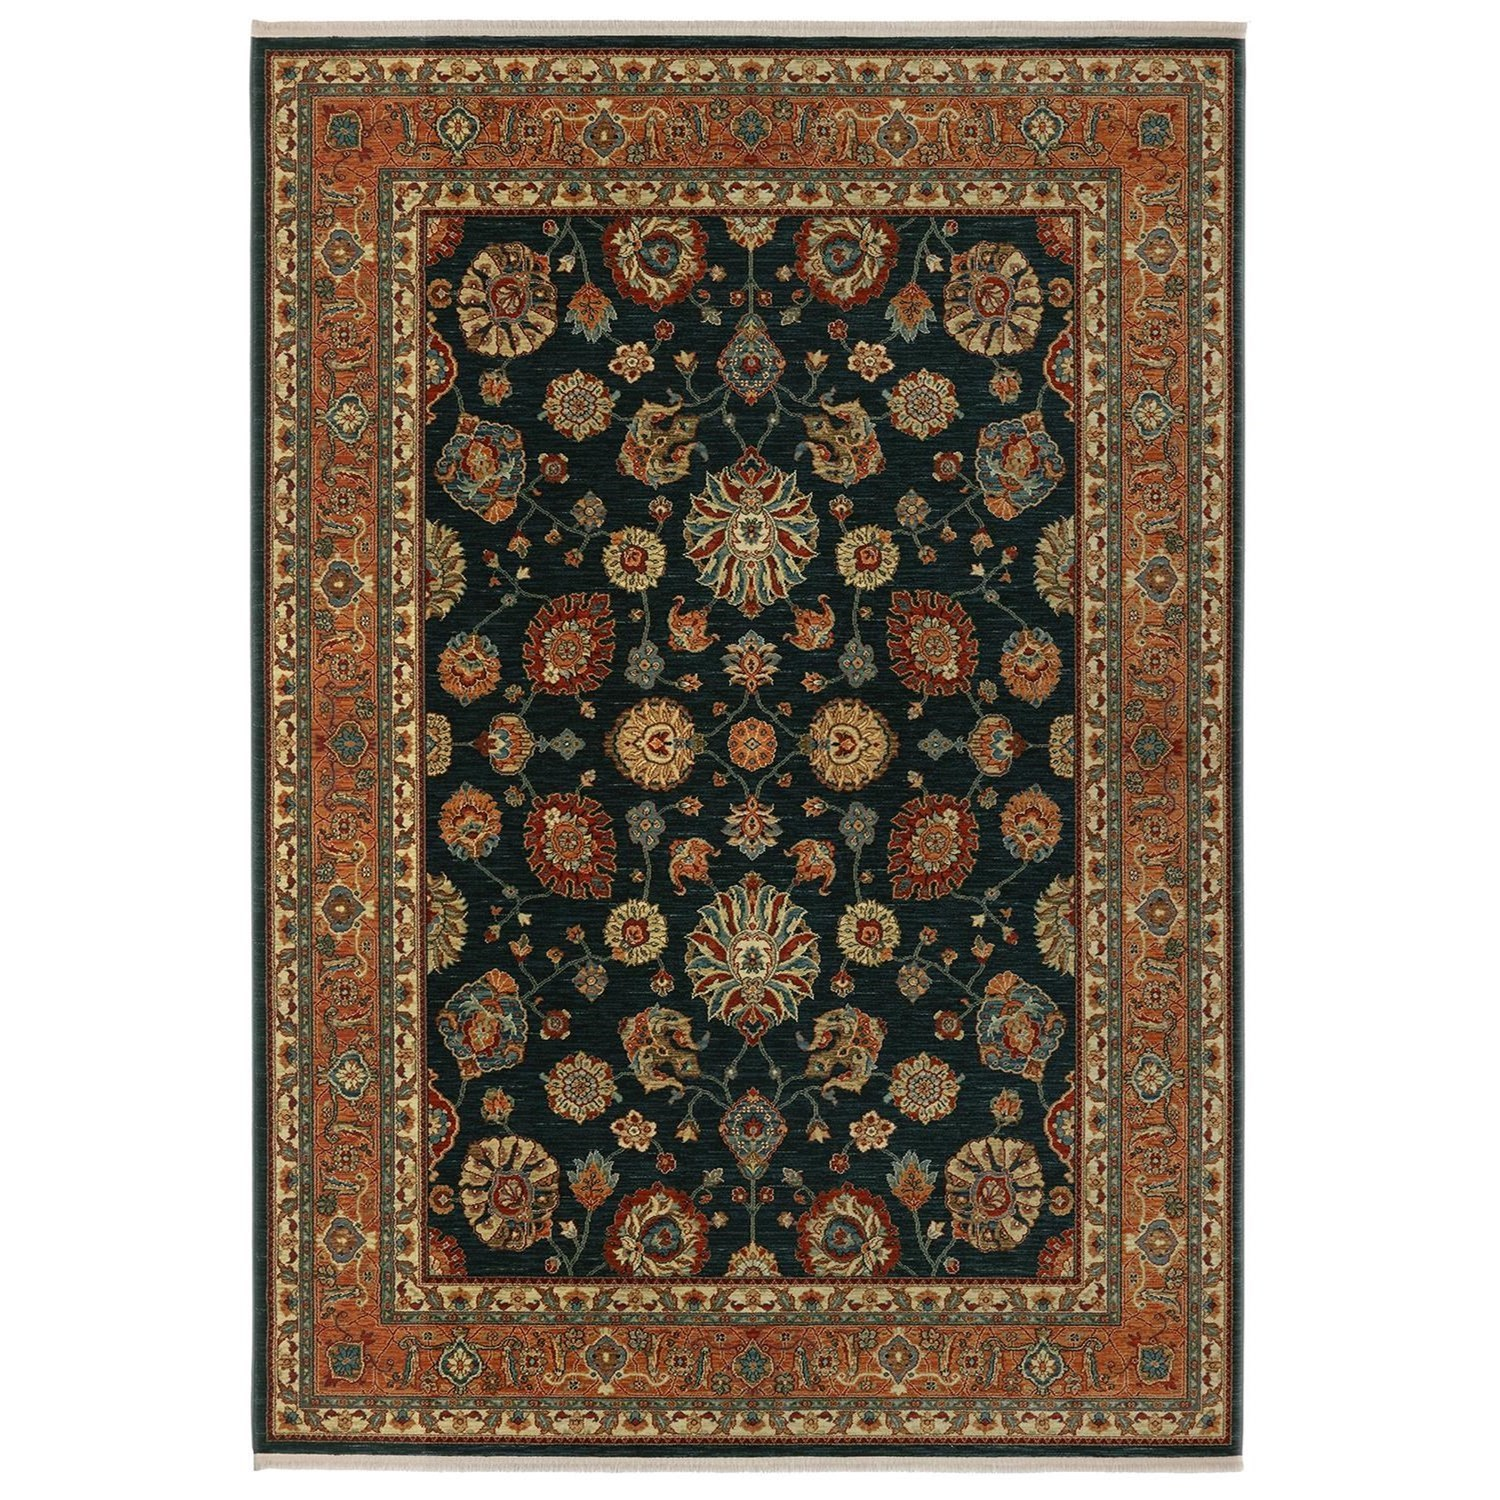 Sovereign 4'3x6' Sultana Navy Rug by Karastan Rugs at Darvin Furniture